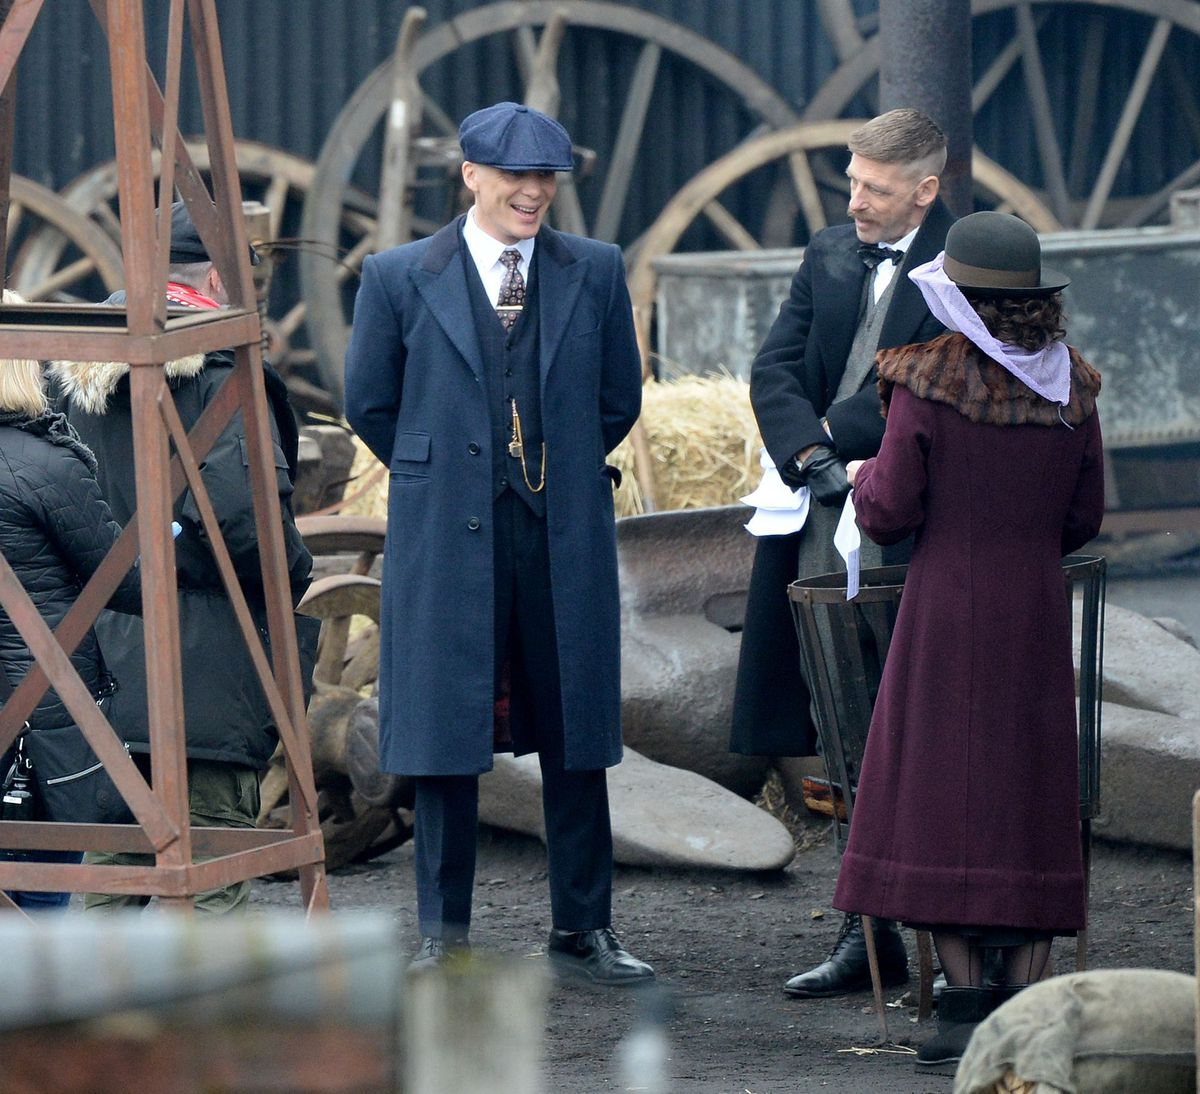 Cillian Murphy, Paul Anderson and Helen McCrory filming Peaky Blinders at the Black Country Living Museum